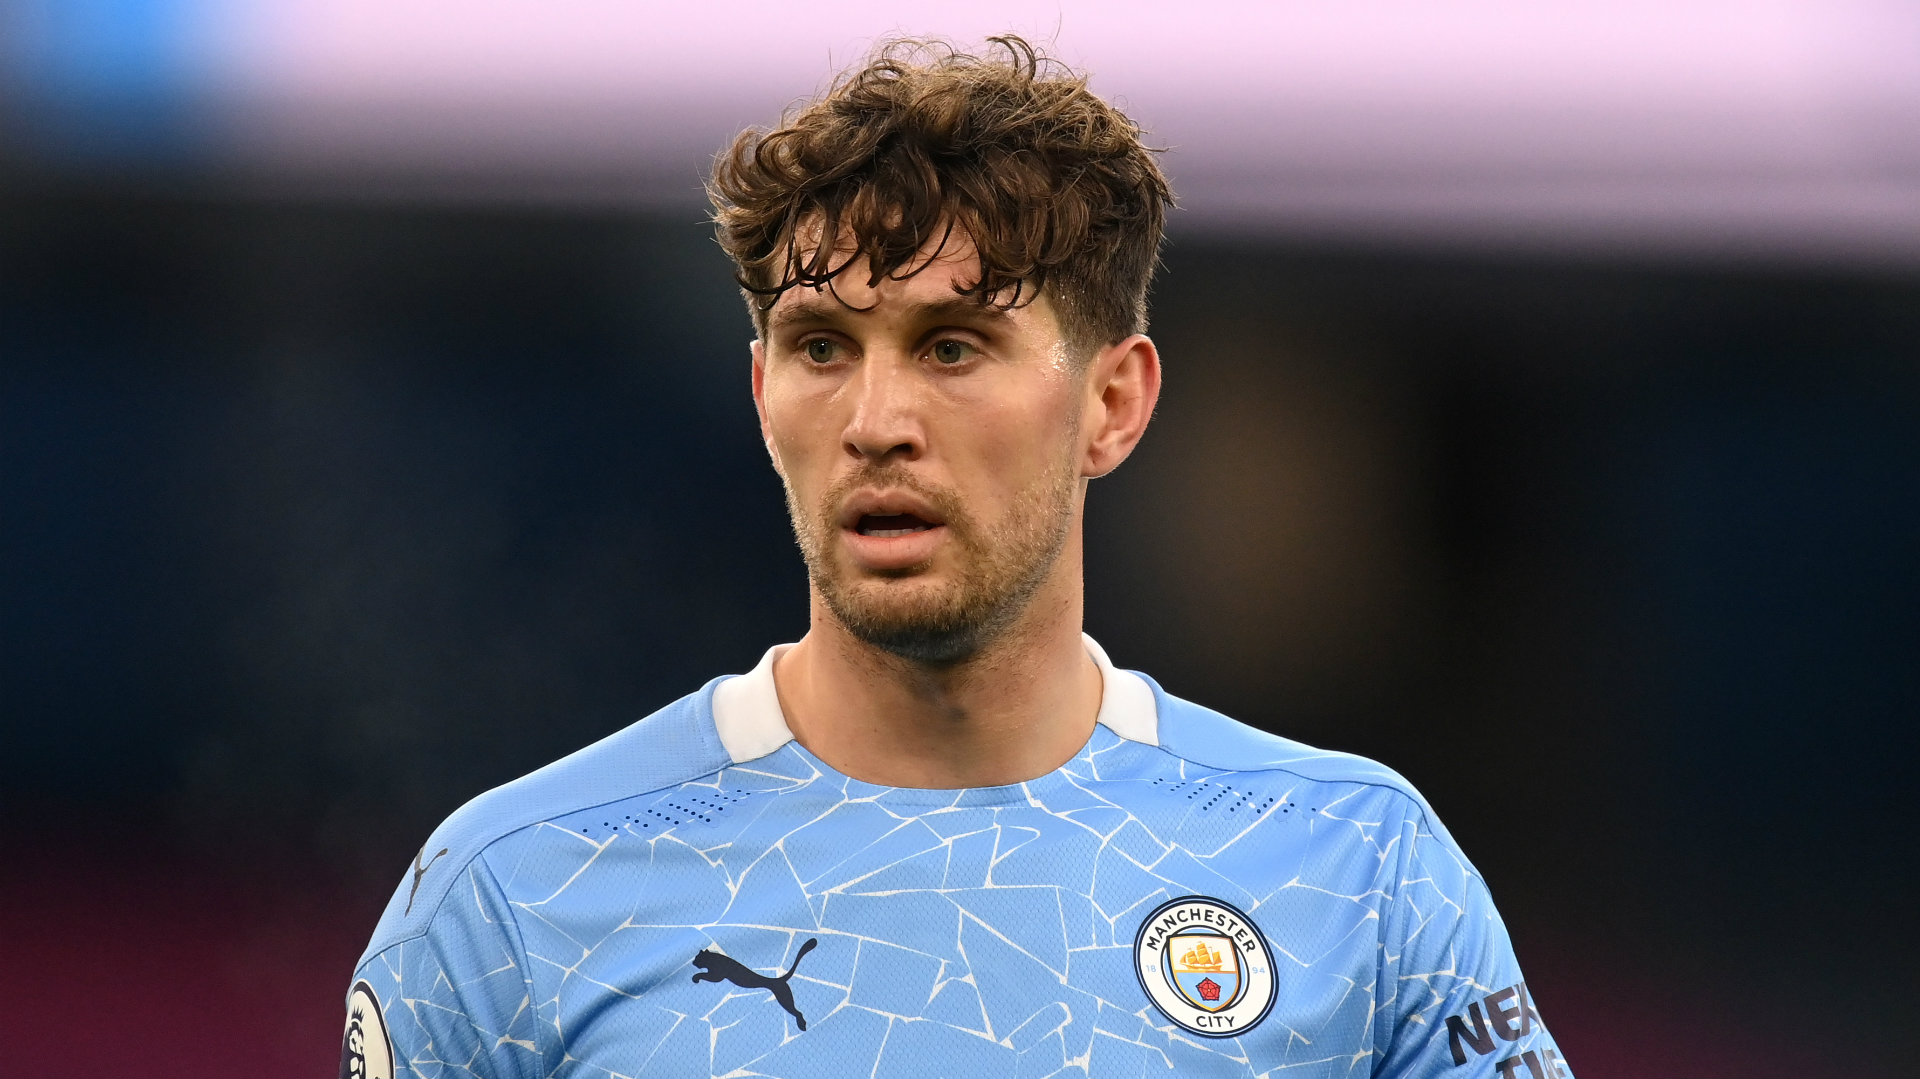 Stones frustrated to see Man City only score twice but welcomes another clean sheet